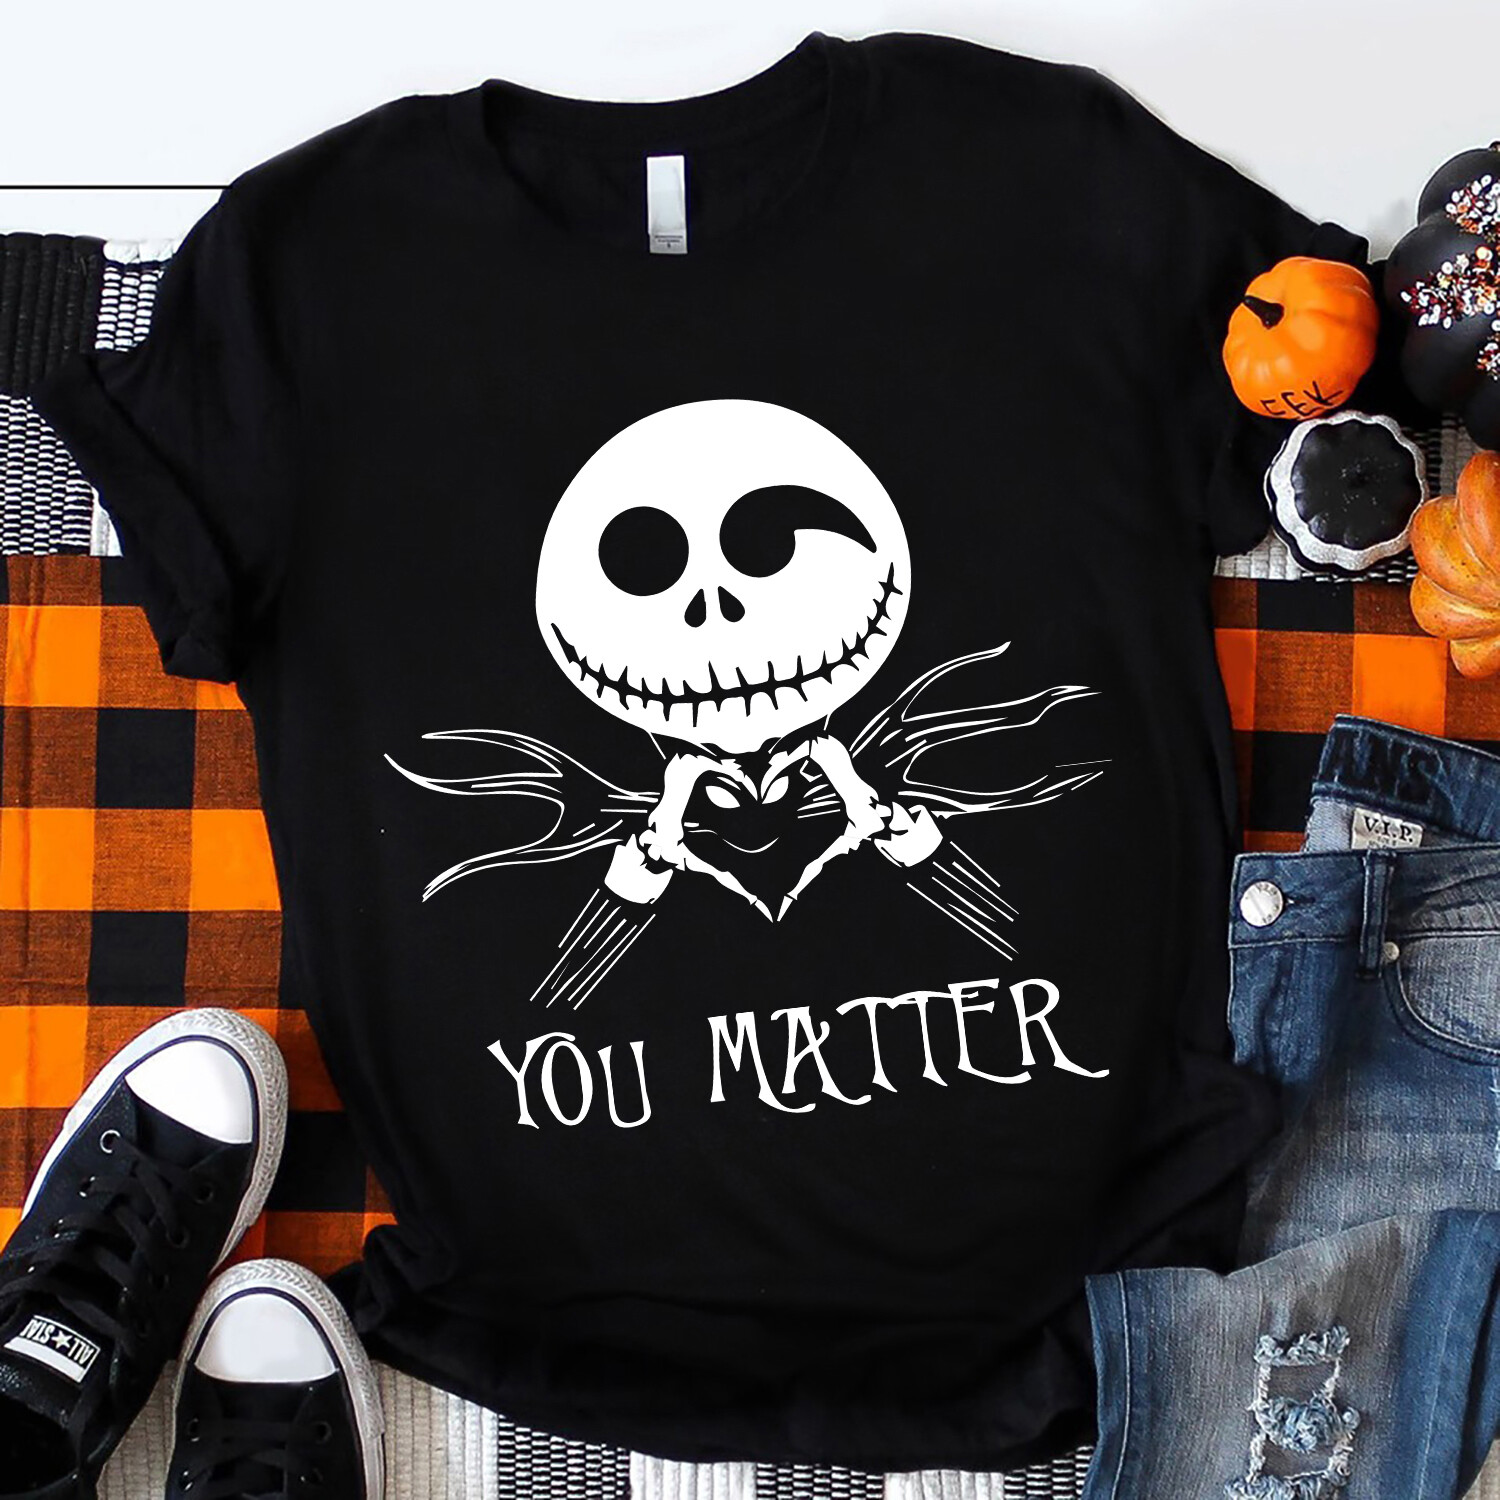 You matter Jack Skellington Shirt, Nightmare Before Christmas, Disney World, Disney Land, Matching Family Shirts, spooky designs, glow in the dark, family shirts, nightmare before, jack and sally tee